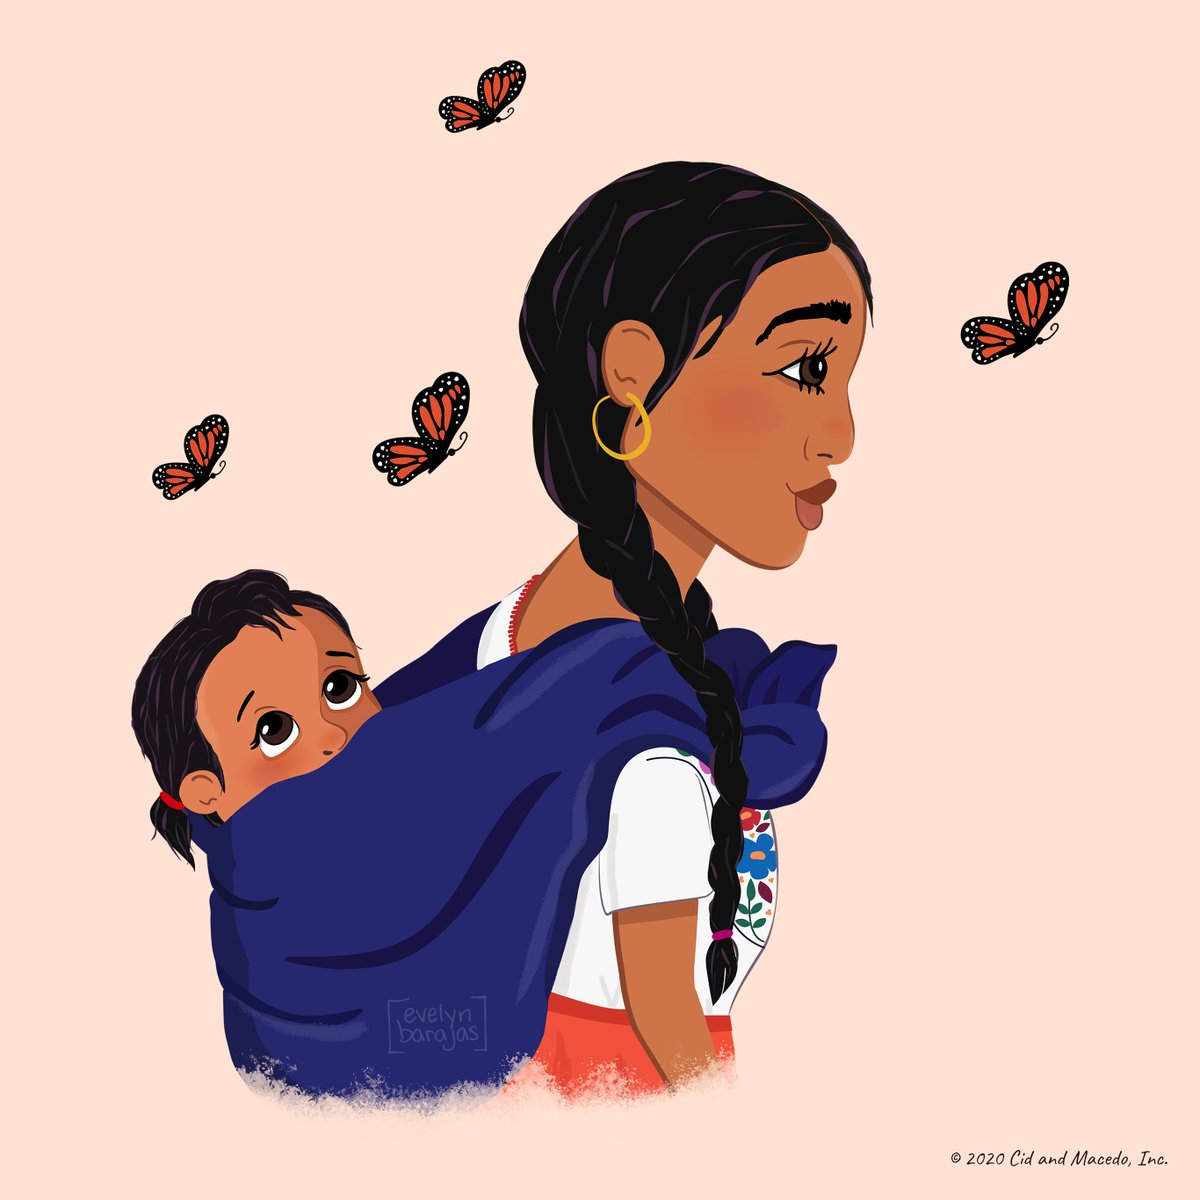 """We're proud to celebrate Latinx heritage every day of the year! Artwork by Evelyn Barajas, who was inspired to create this piece in honor of her Oaxacan mother, """"who often carried her children this way, wrapped in her rebozo."""" #LatinxHeritageMonth https://t.co/tlqFAYFkFK"""